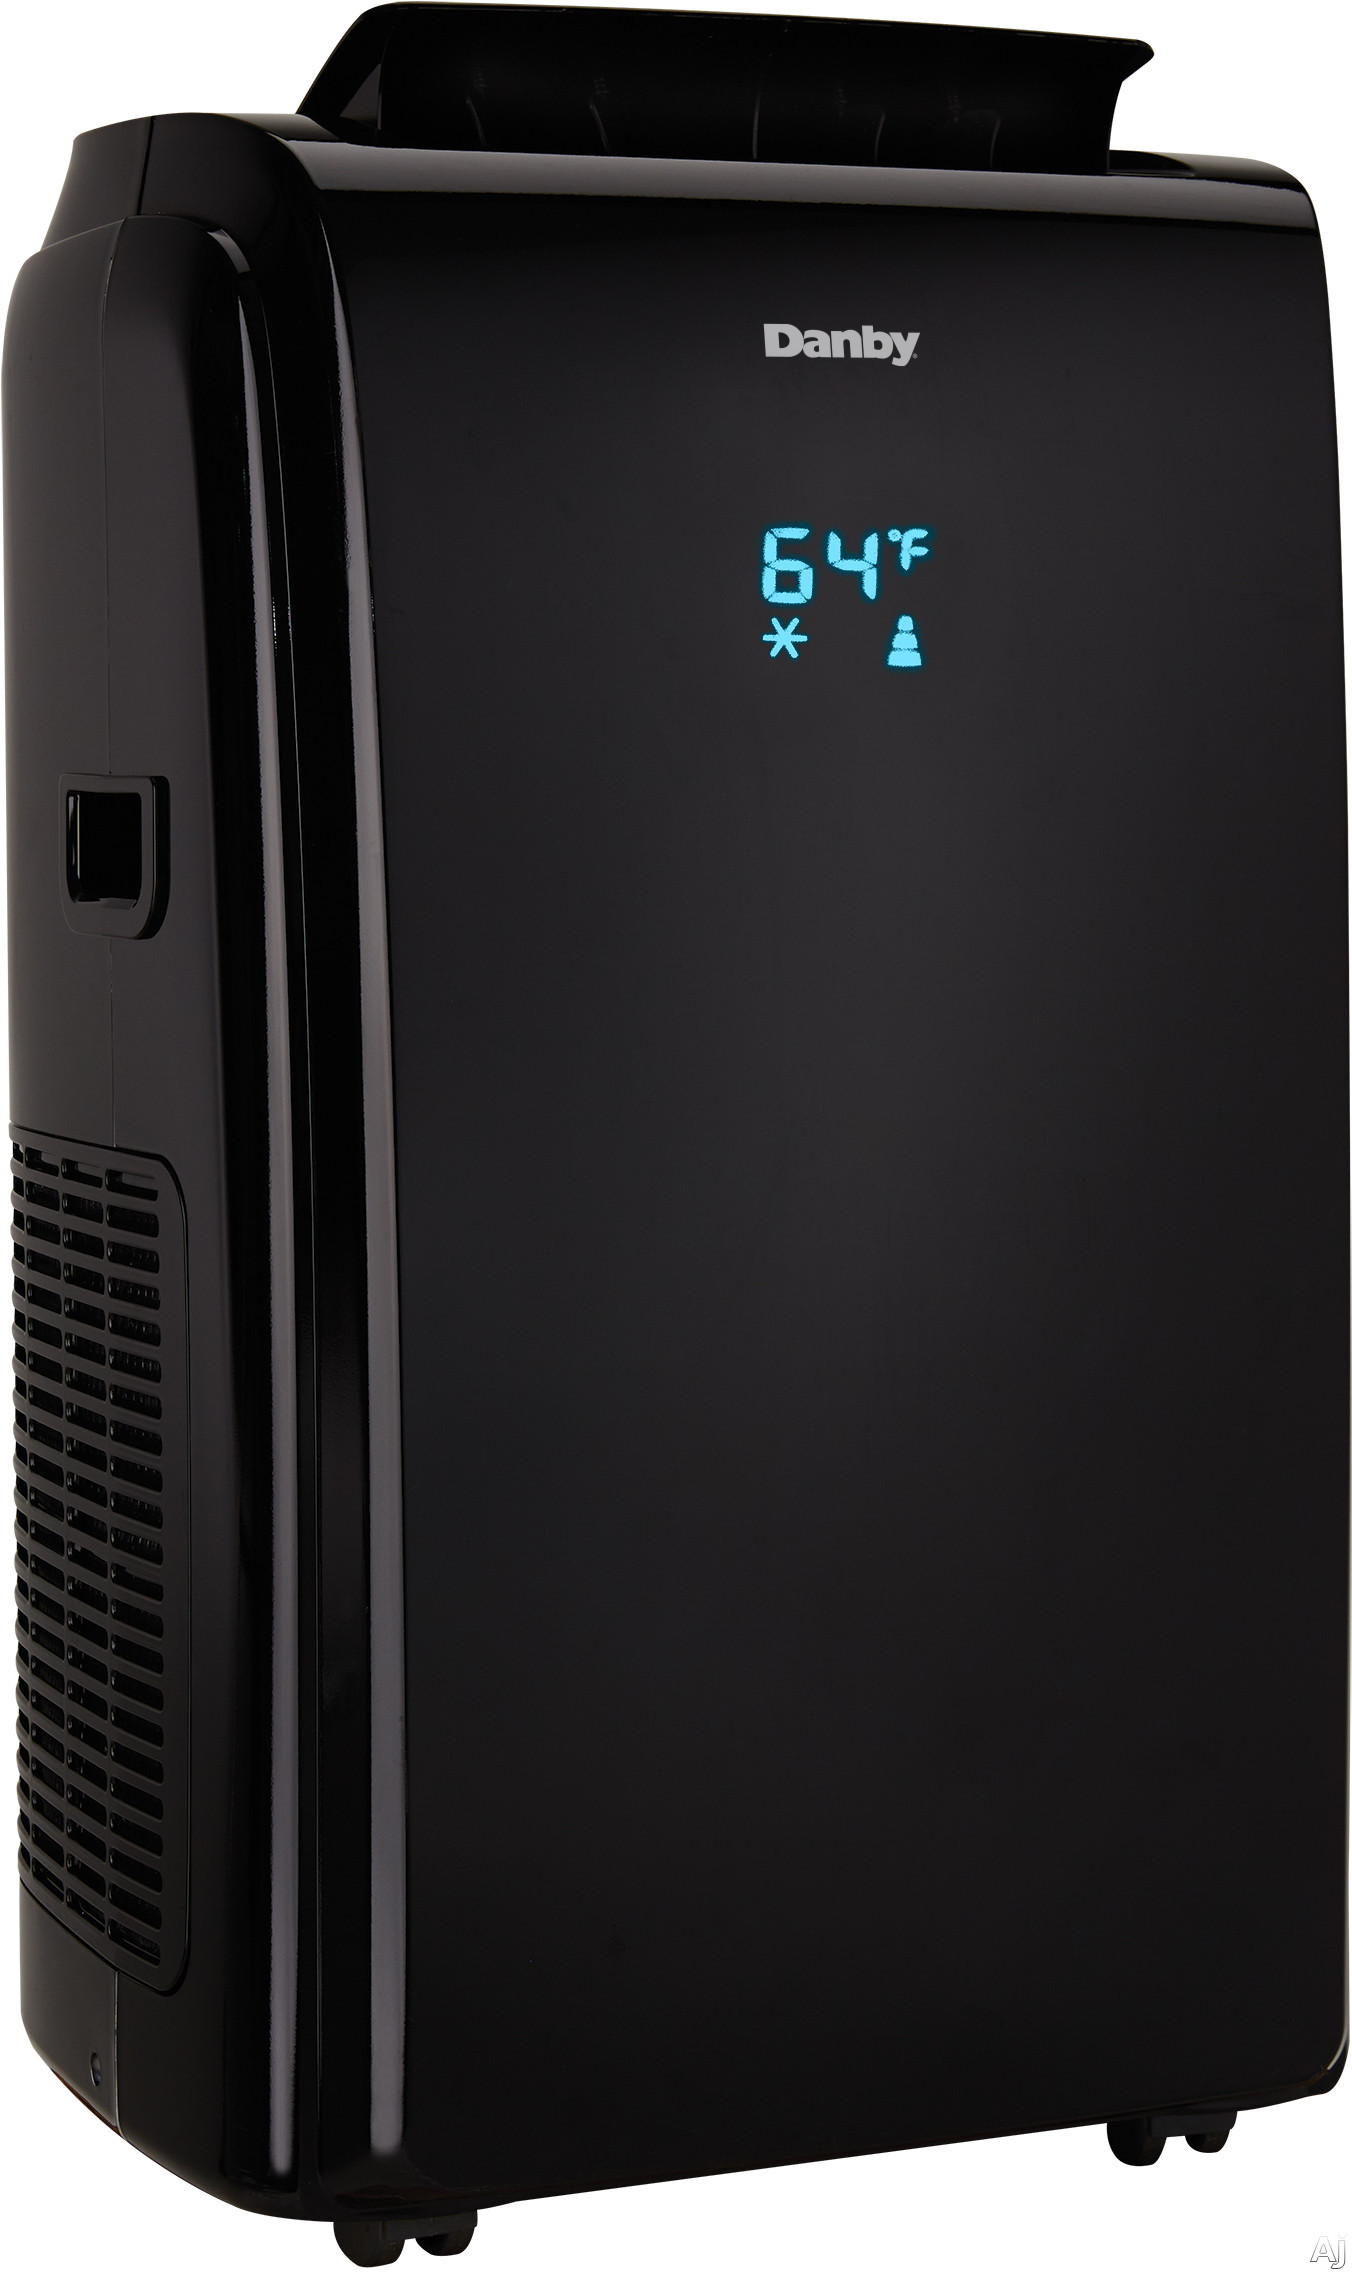 Danby DPA140HEAUBDB 14,000 BTU Portable Air Conditioner with Dehumidifier Mode, Reuseable Air Filter, Heater Option, 24 Hour Timer, Auto Restart, Auto Swing, 3 Speed Fan and Integrated Handles